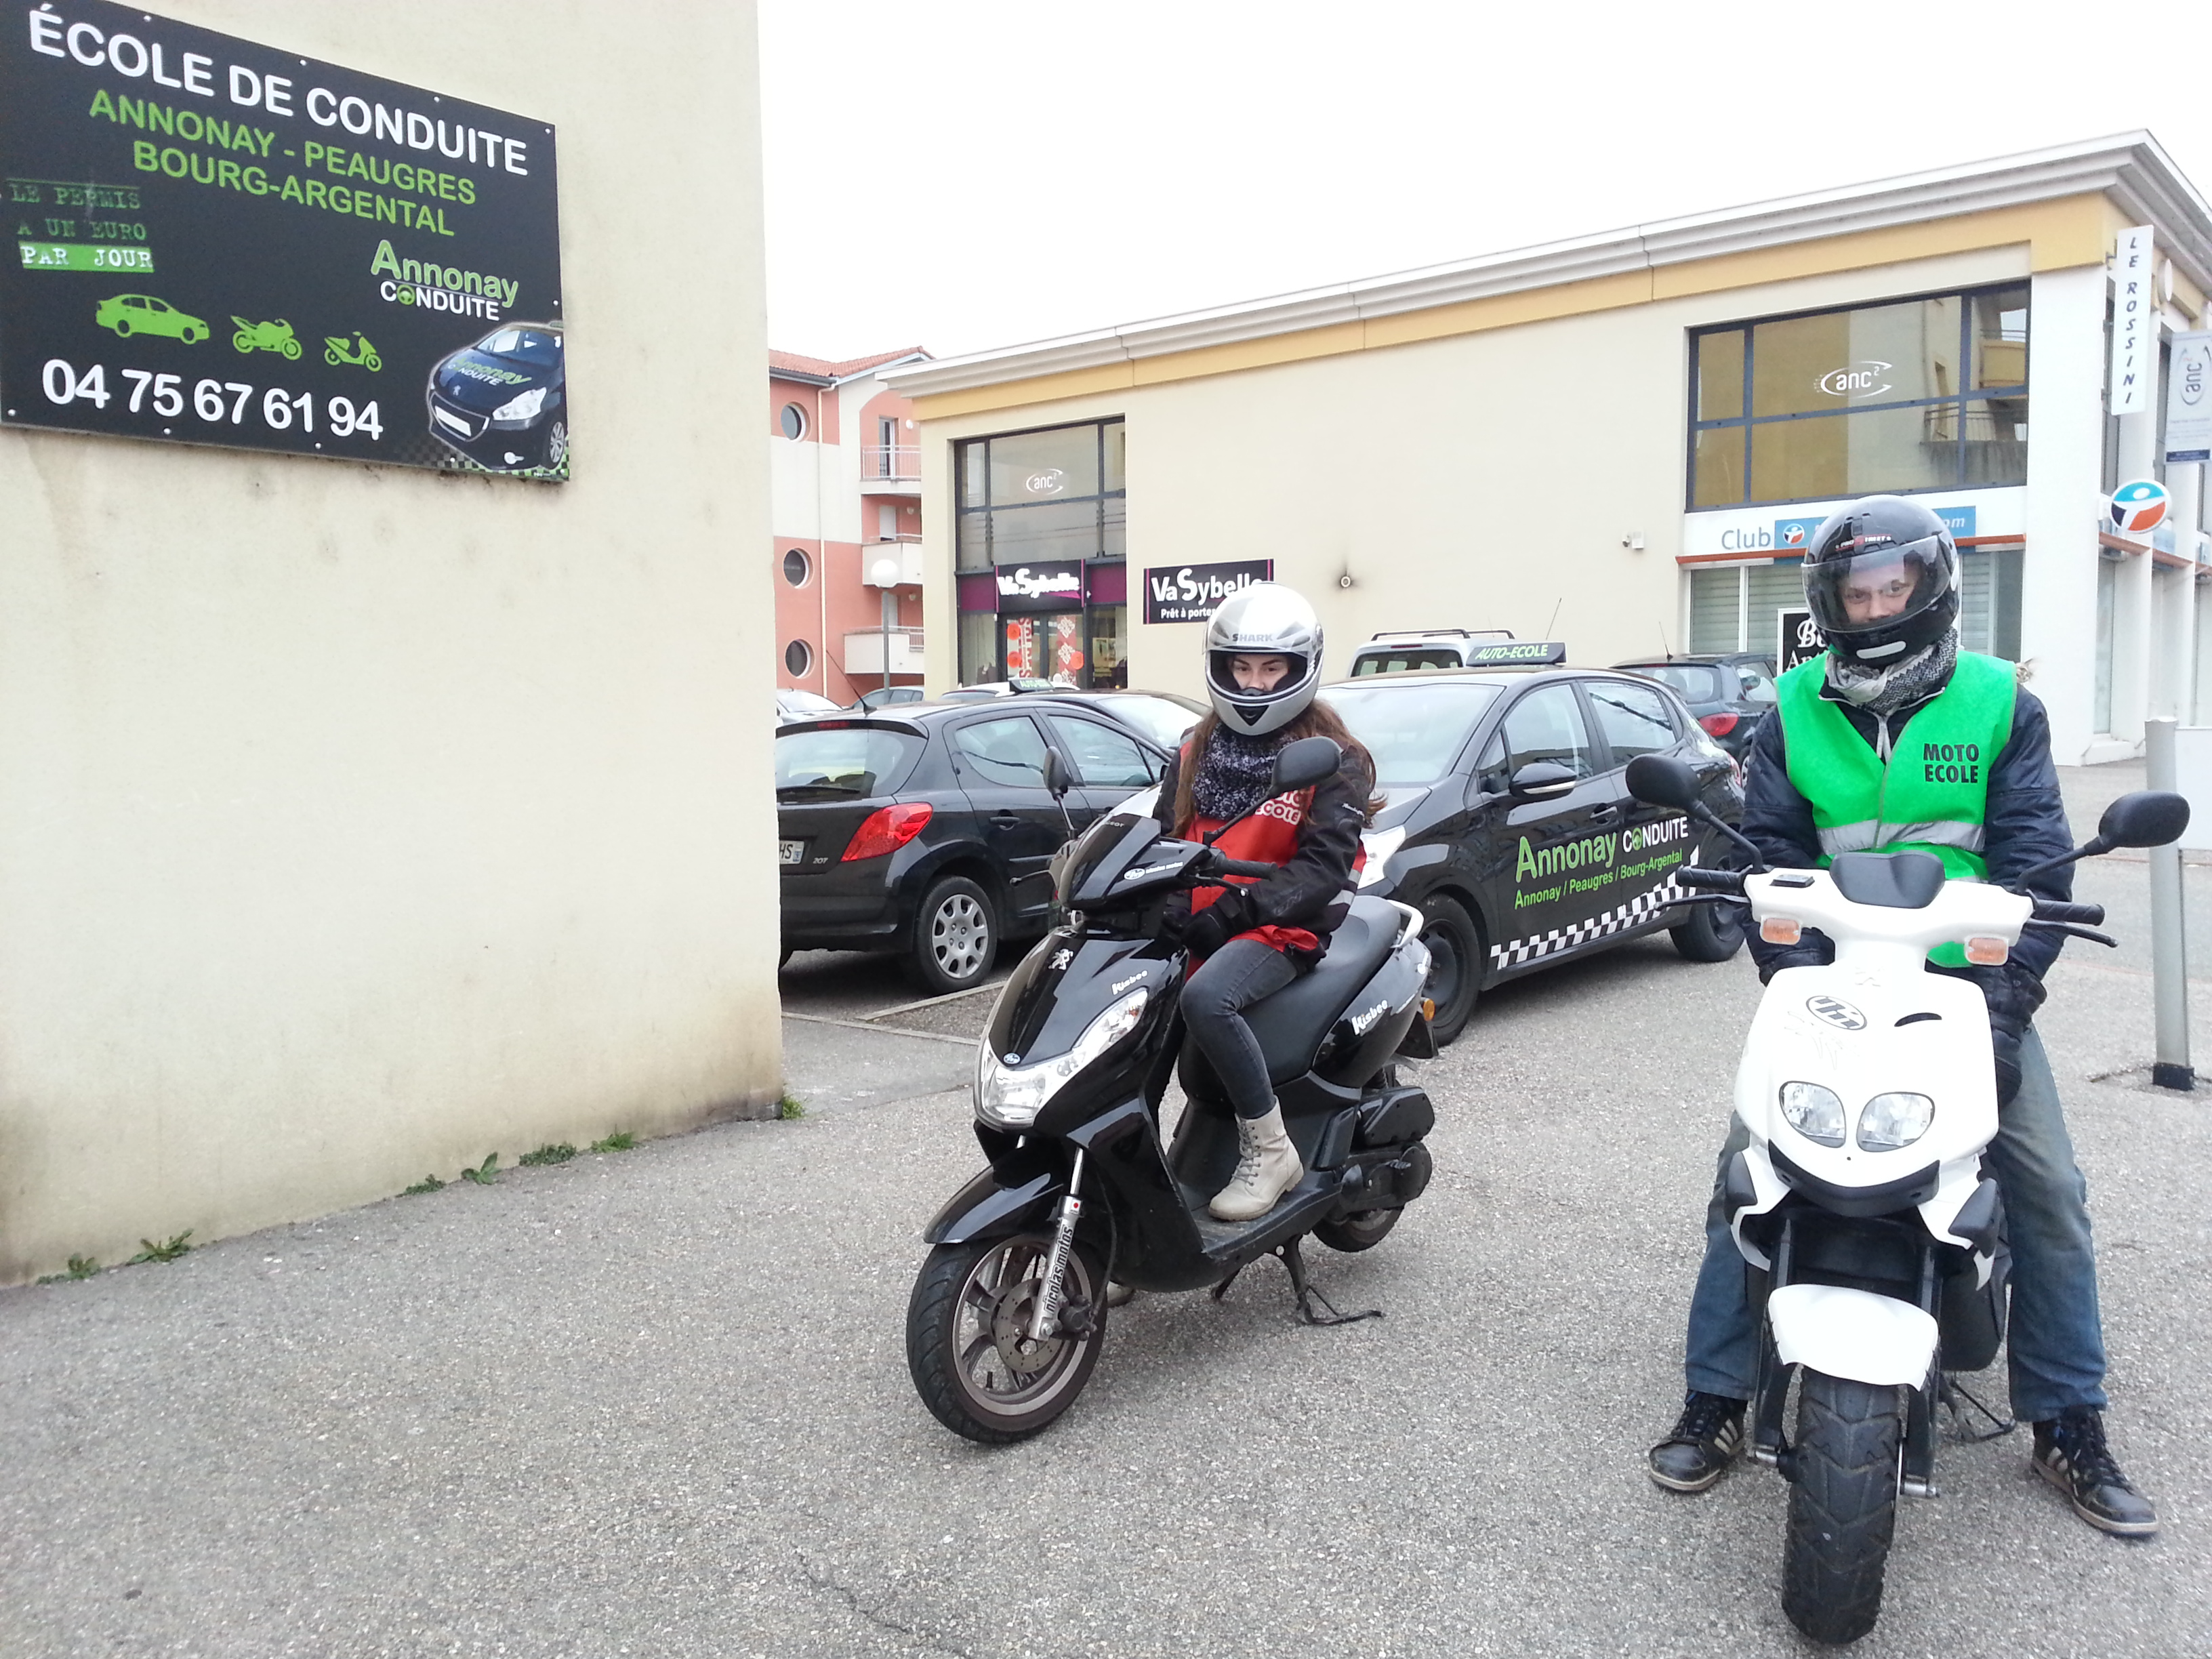 permis scooter annonay